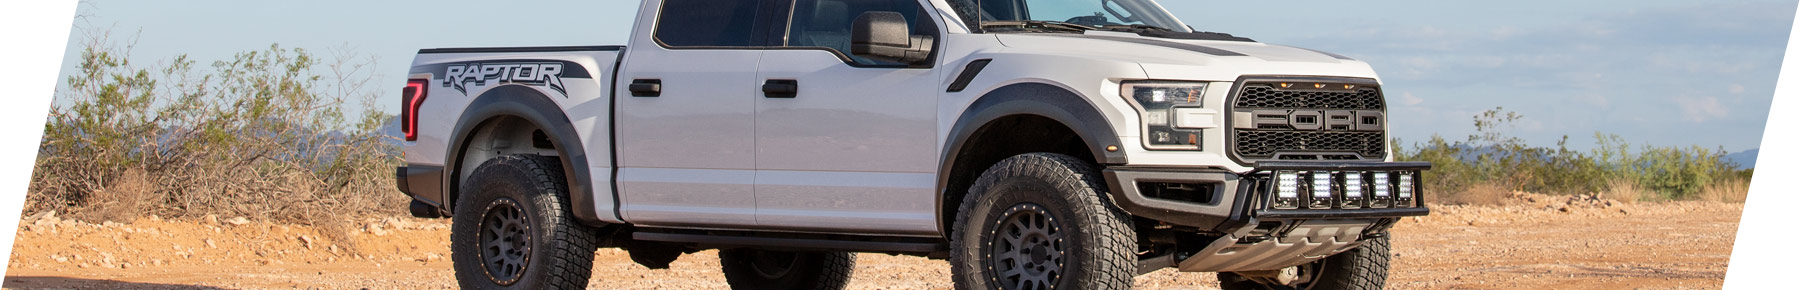 2017-2019 Ford Raptor Exterior Parts & Accessories